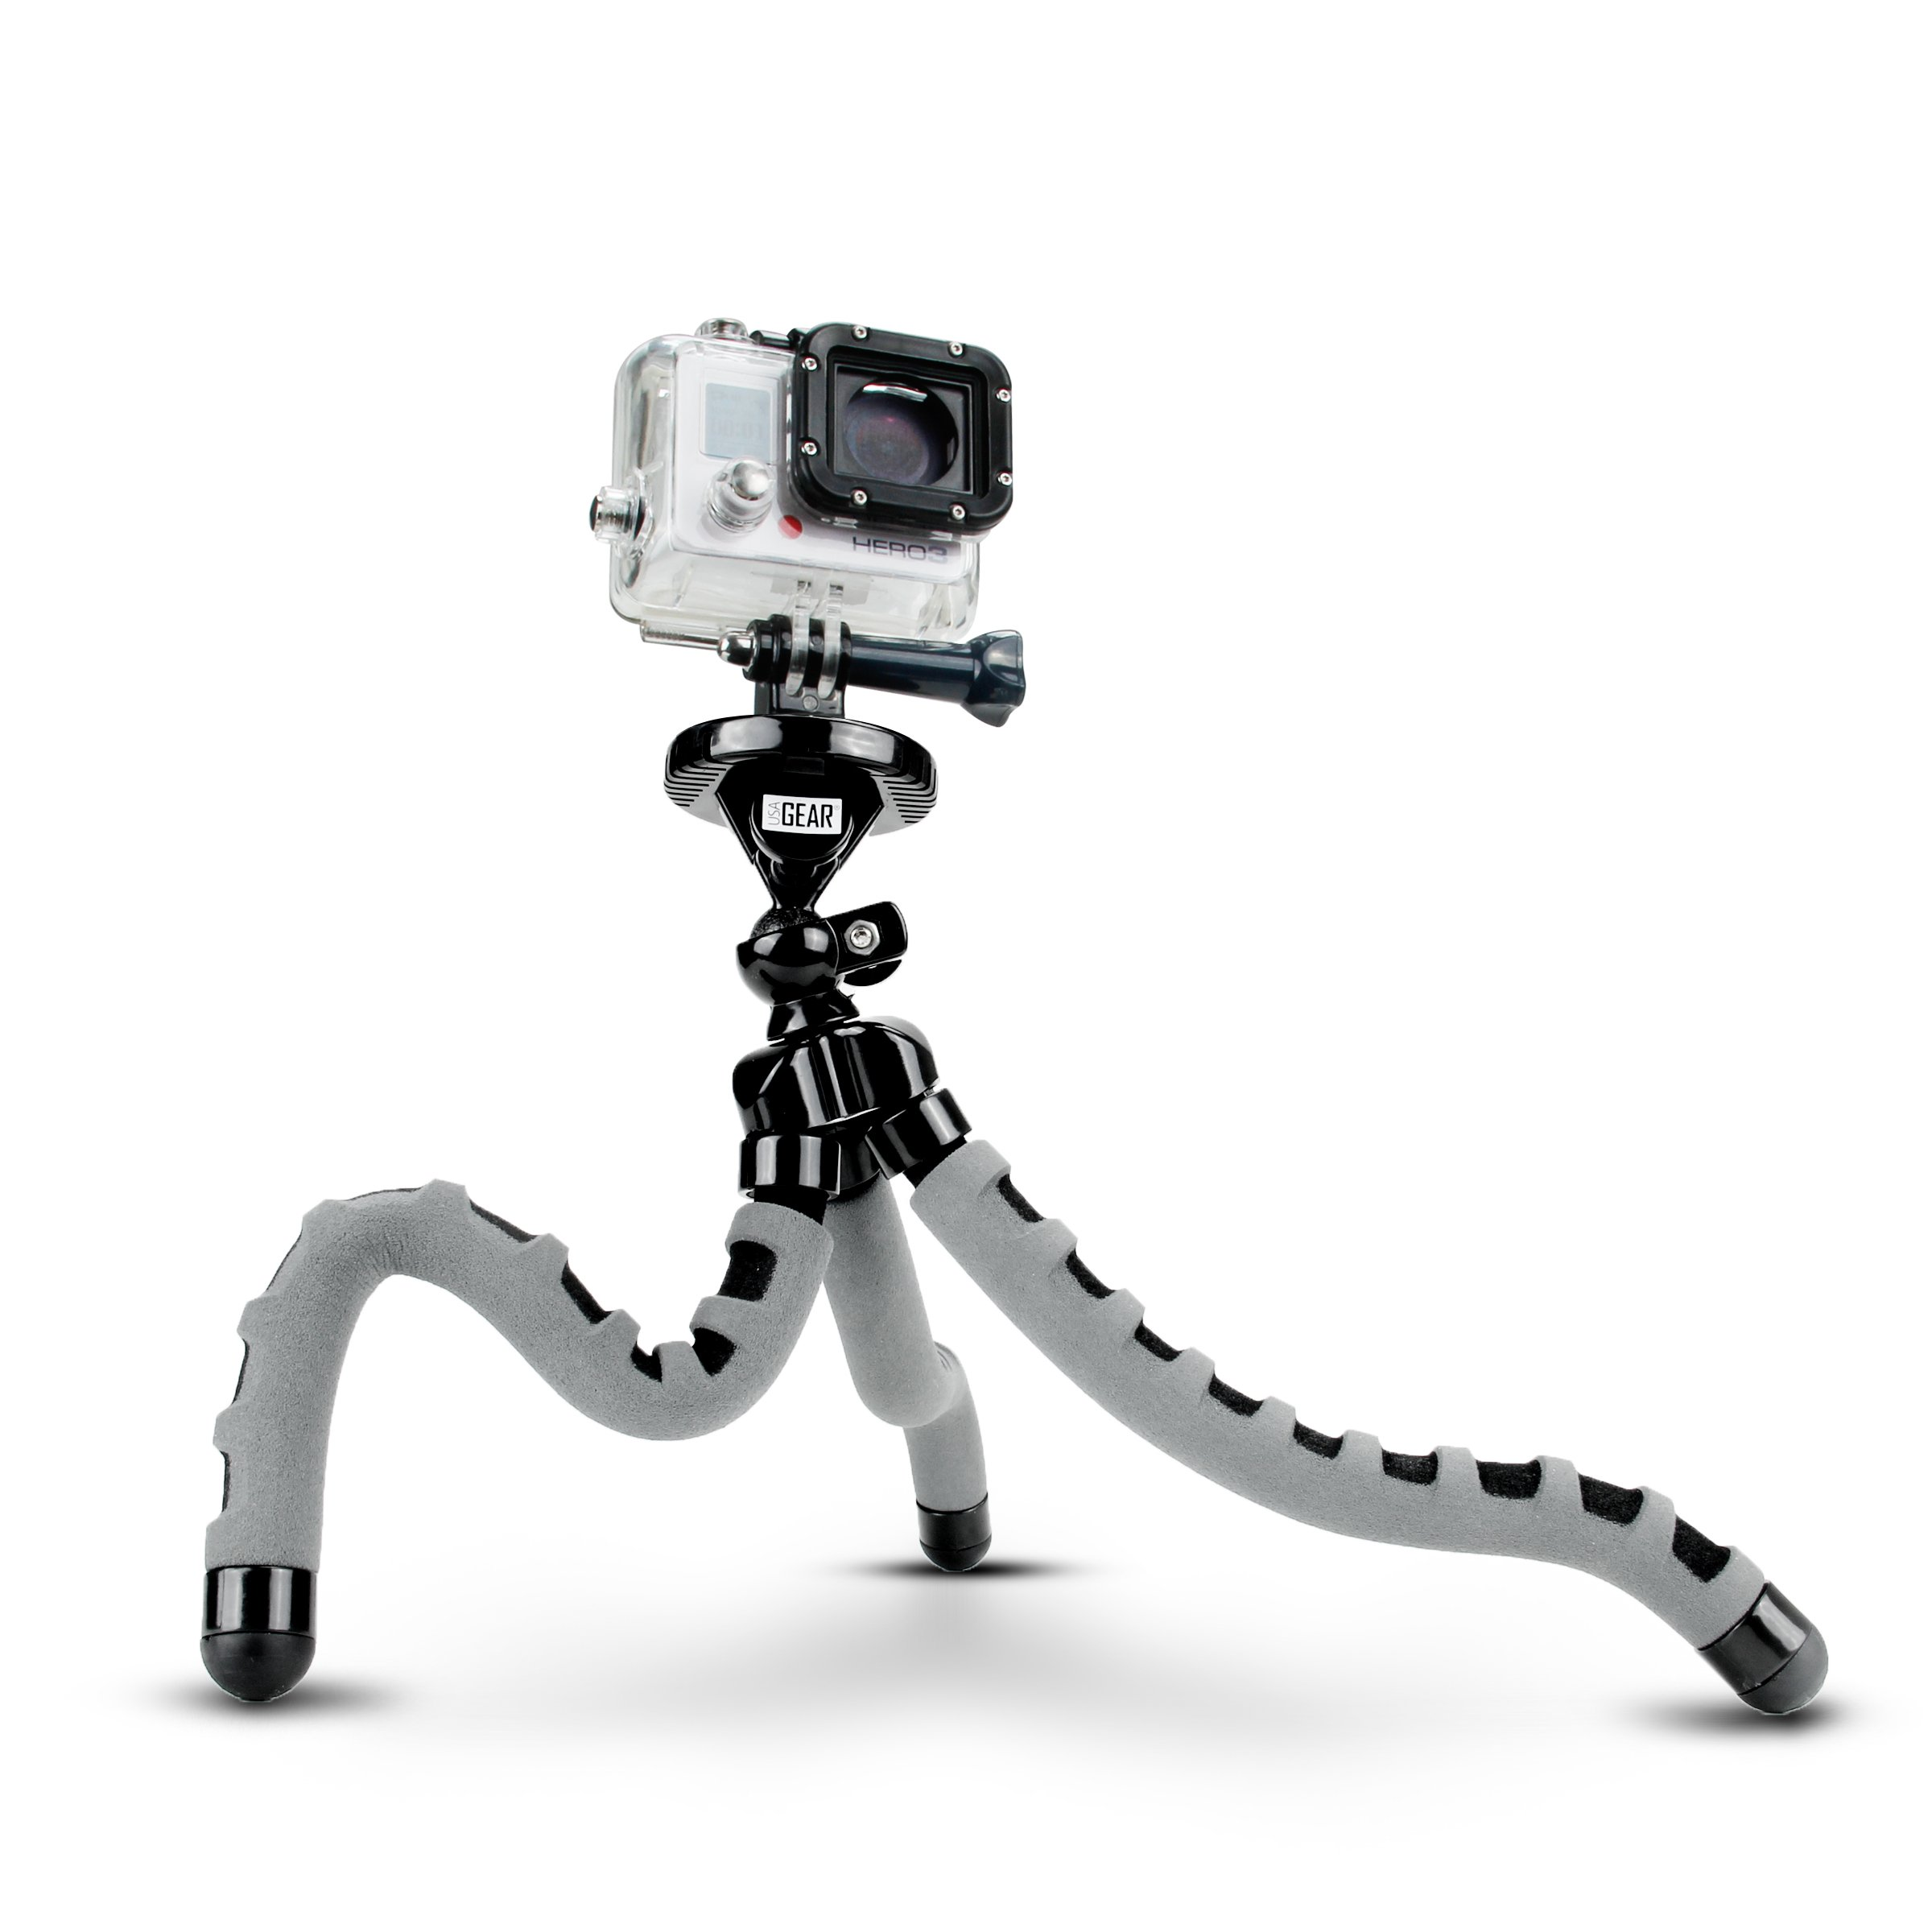 USA Gear Flexible Camera Tripod with 360-Degree Rotating Mount, Standard Socket Adapter, and Quick-Release Plate Works with Canon EOS Rebel T6, Rebel S2, EOS 80D, Nikon D5 and Many Others! by USA Gear